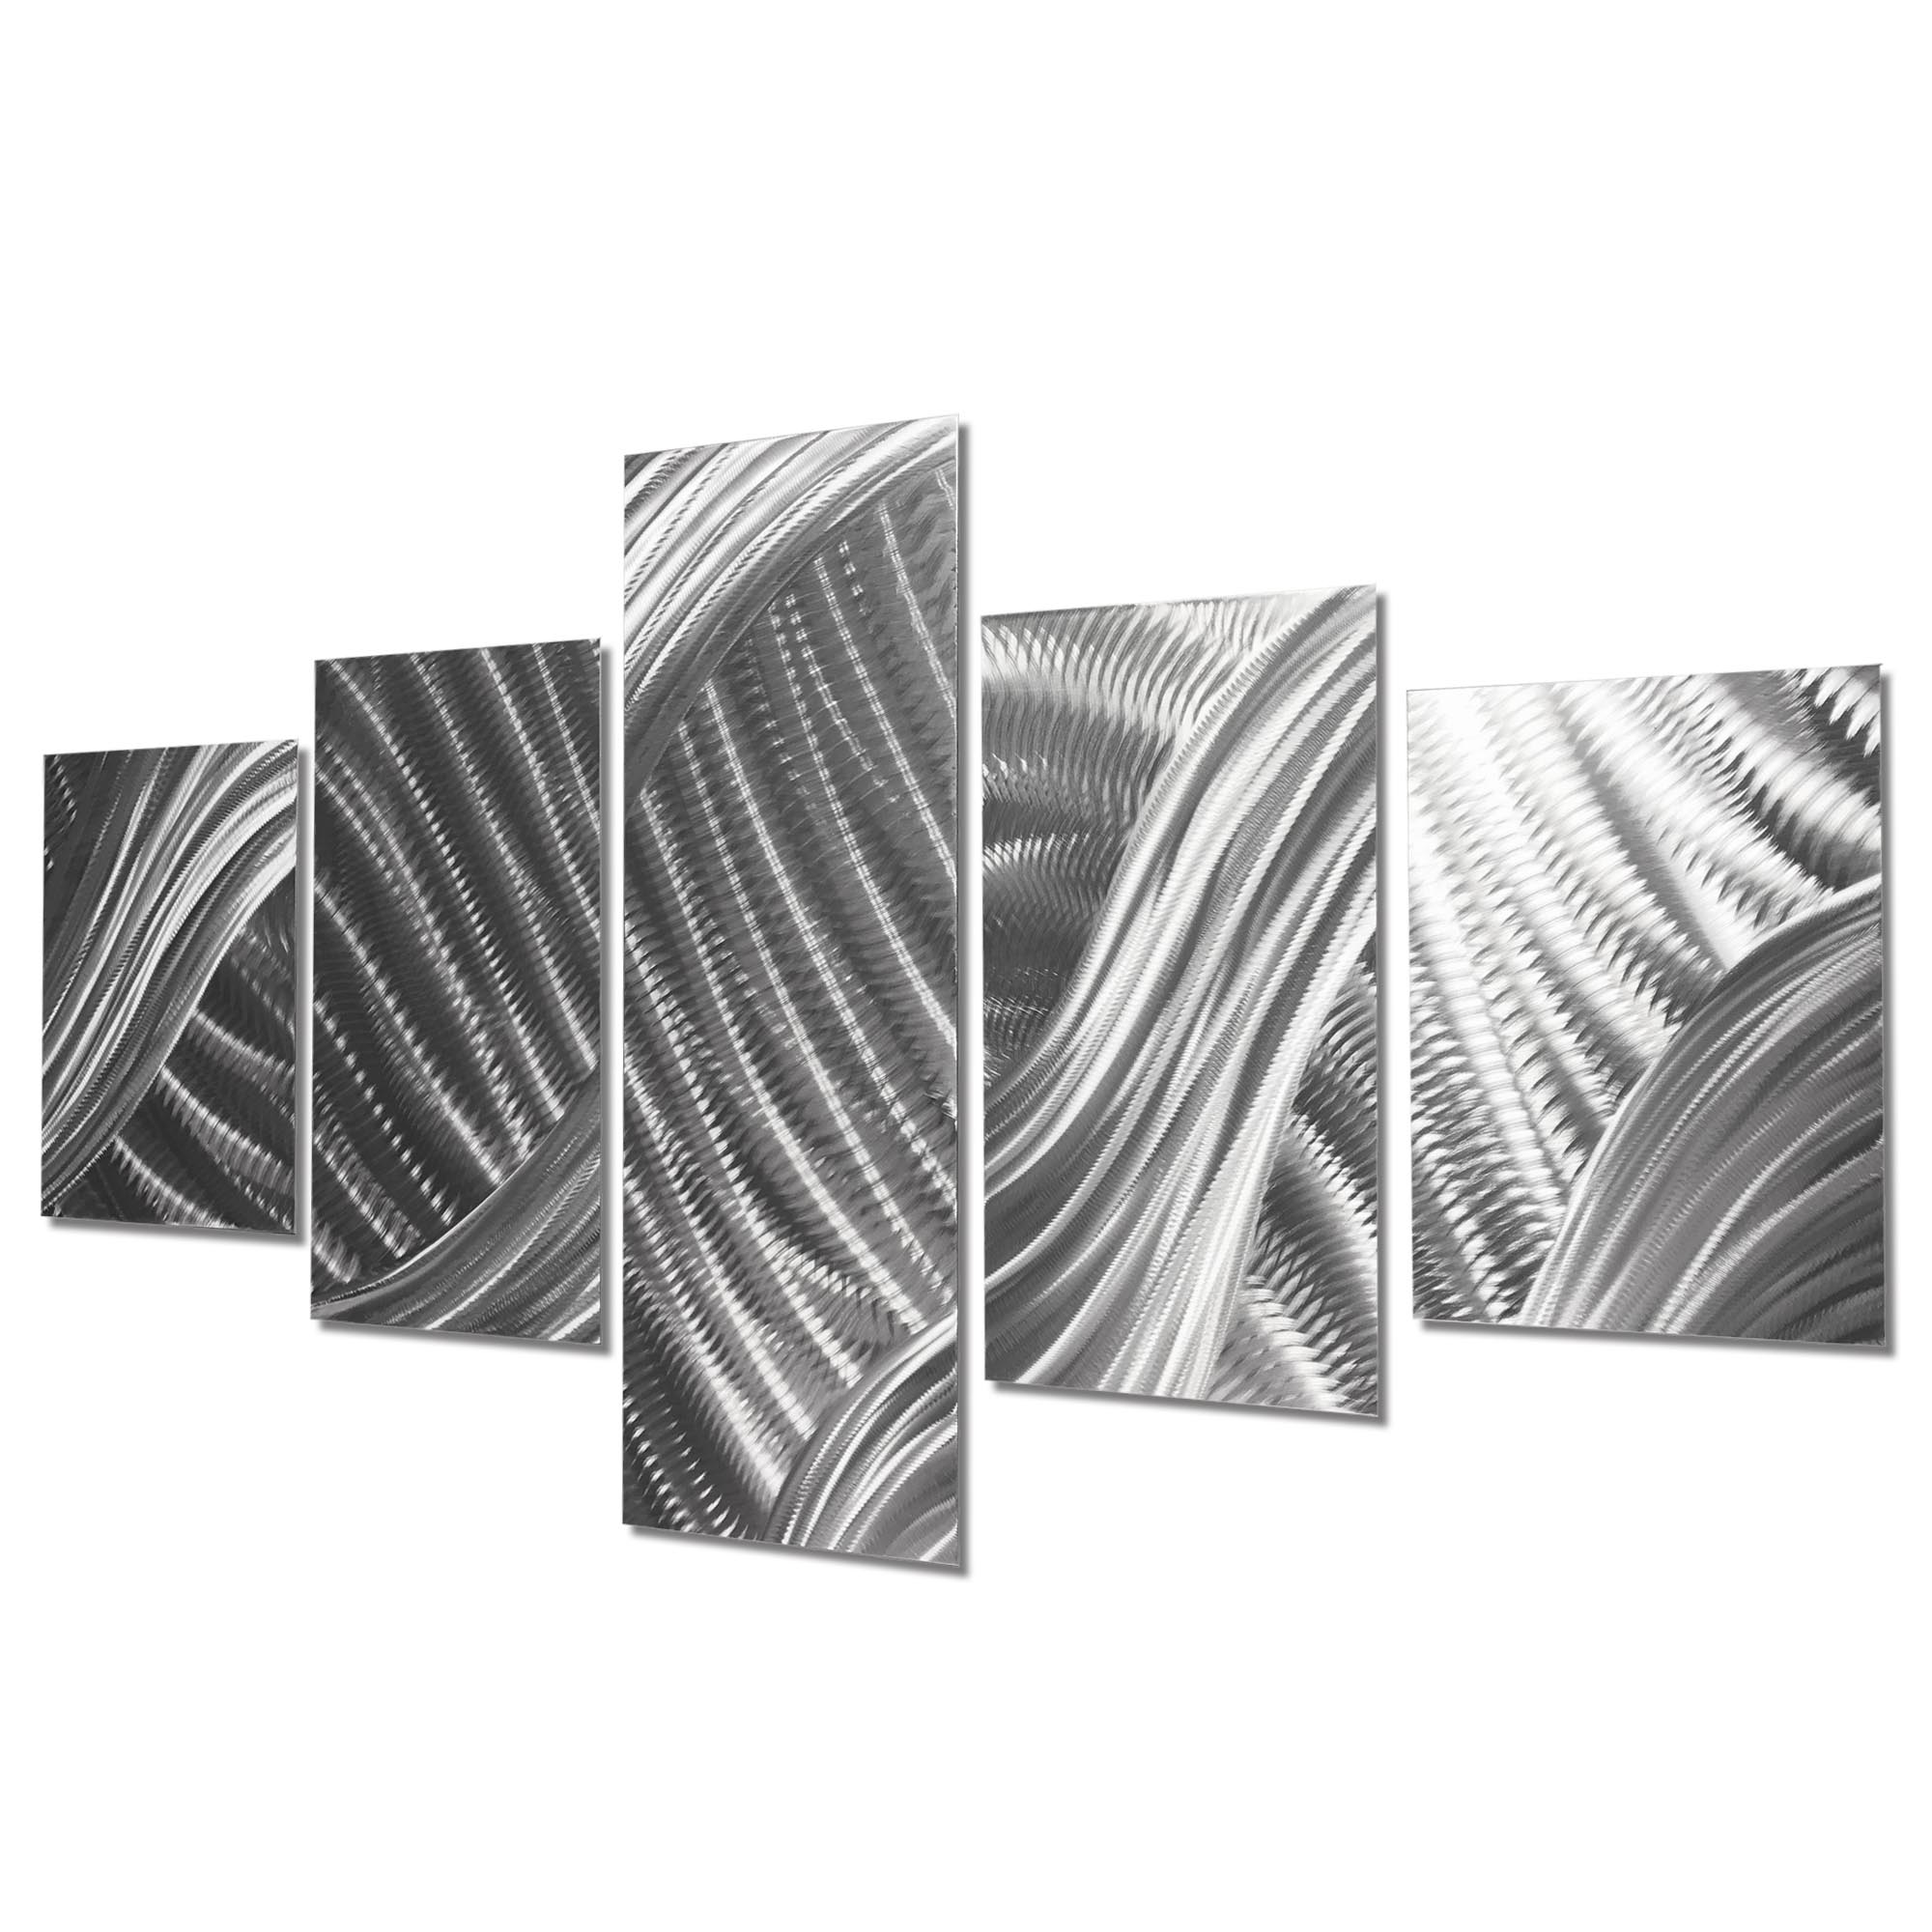 Columnar Brushstrokes 64x36in. Natural Aluminum Abstract Decor - Image 2